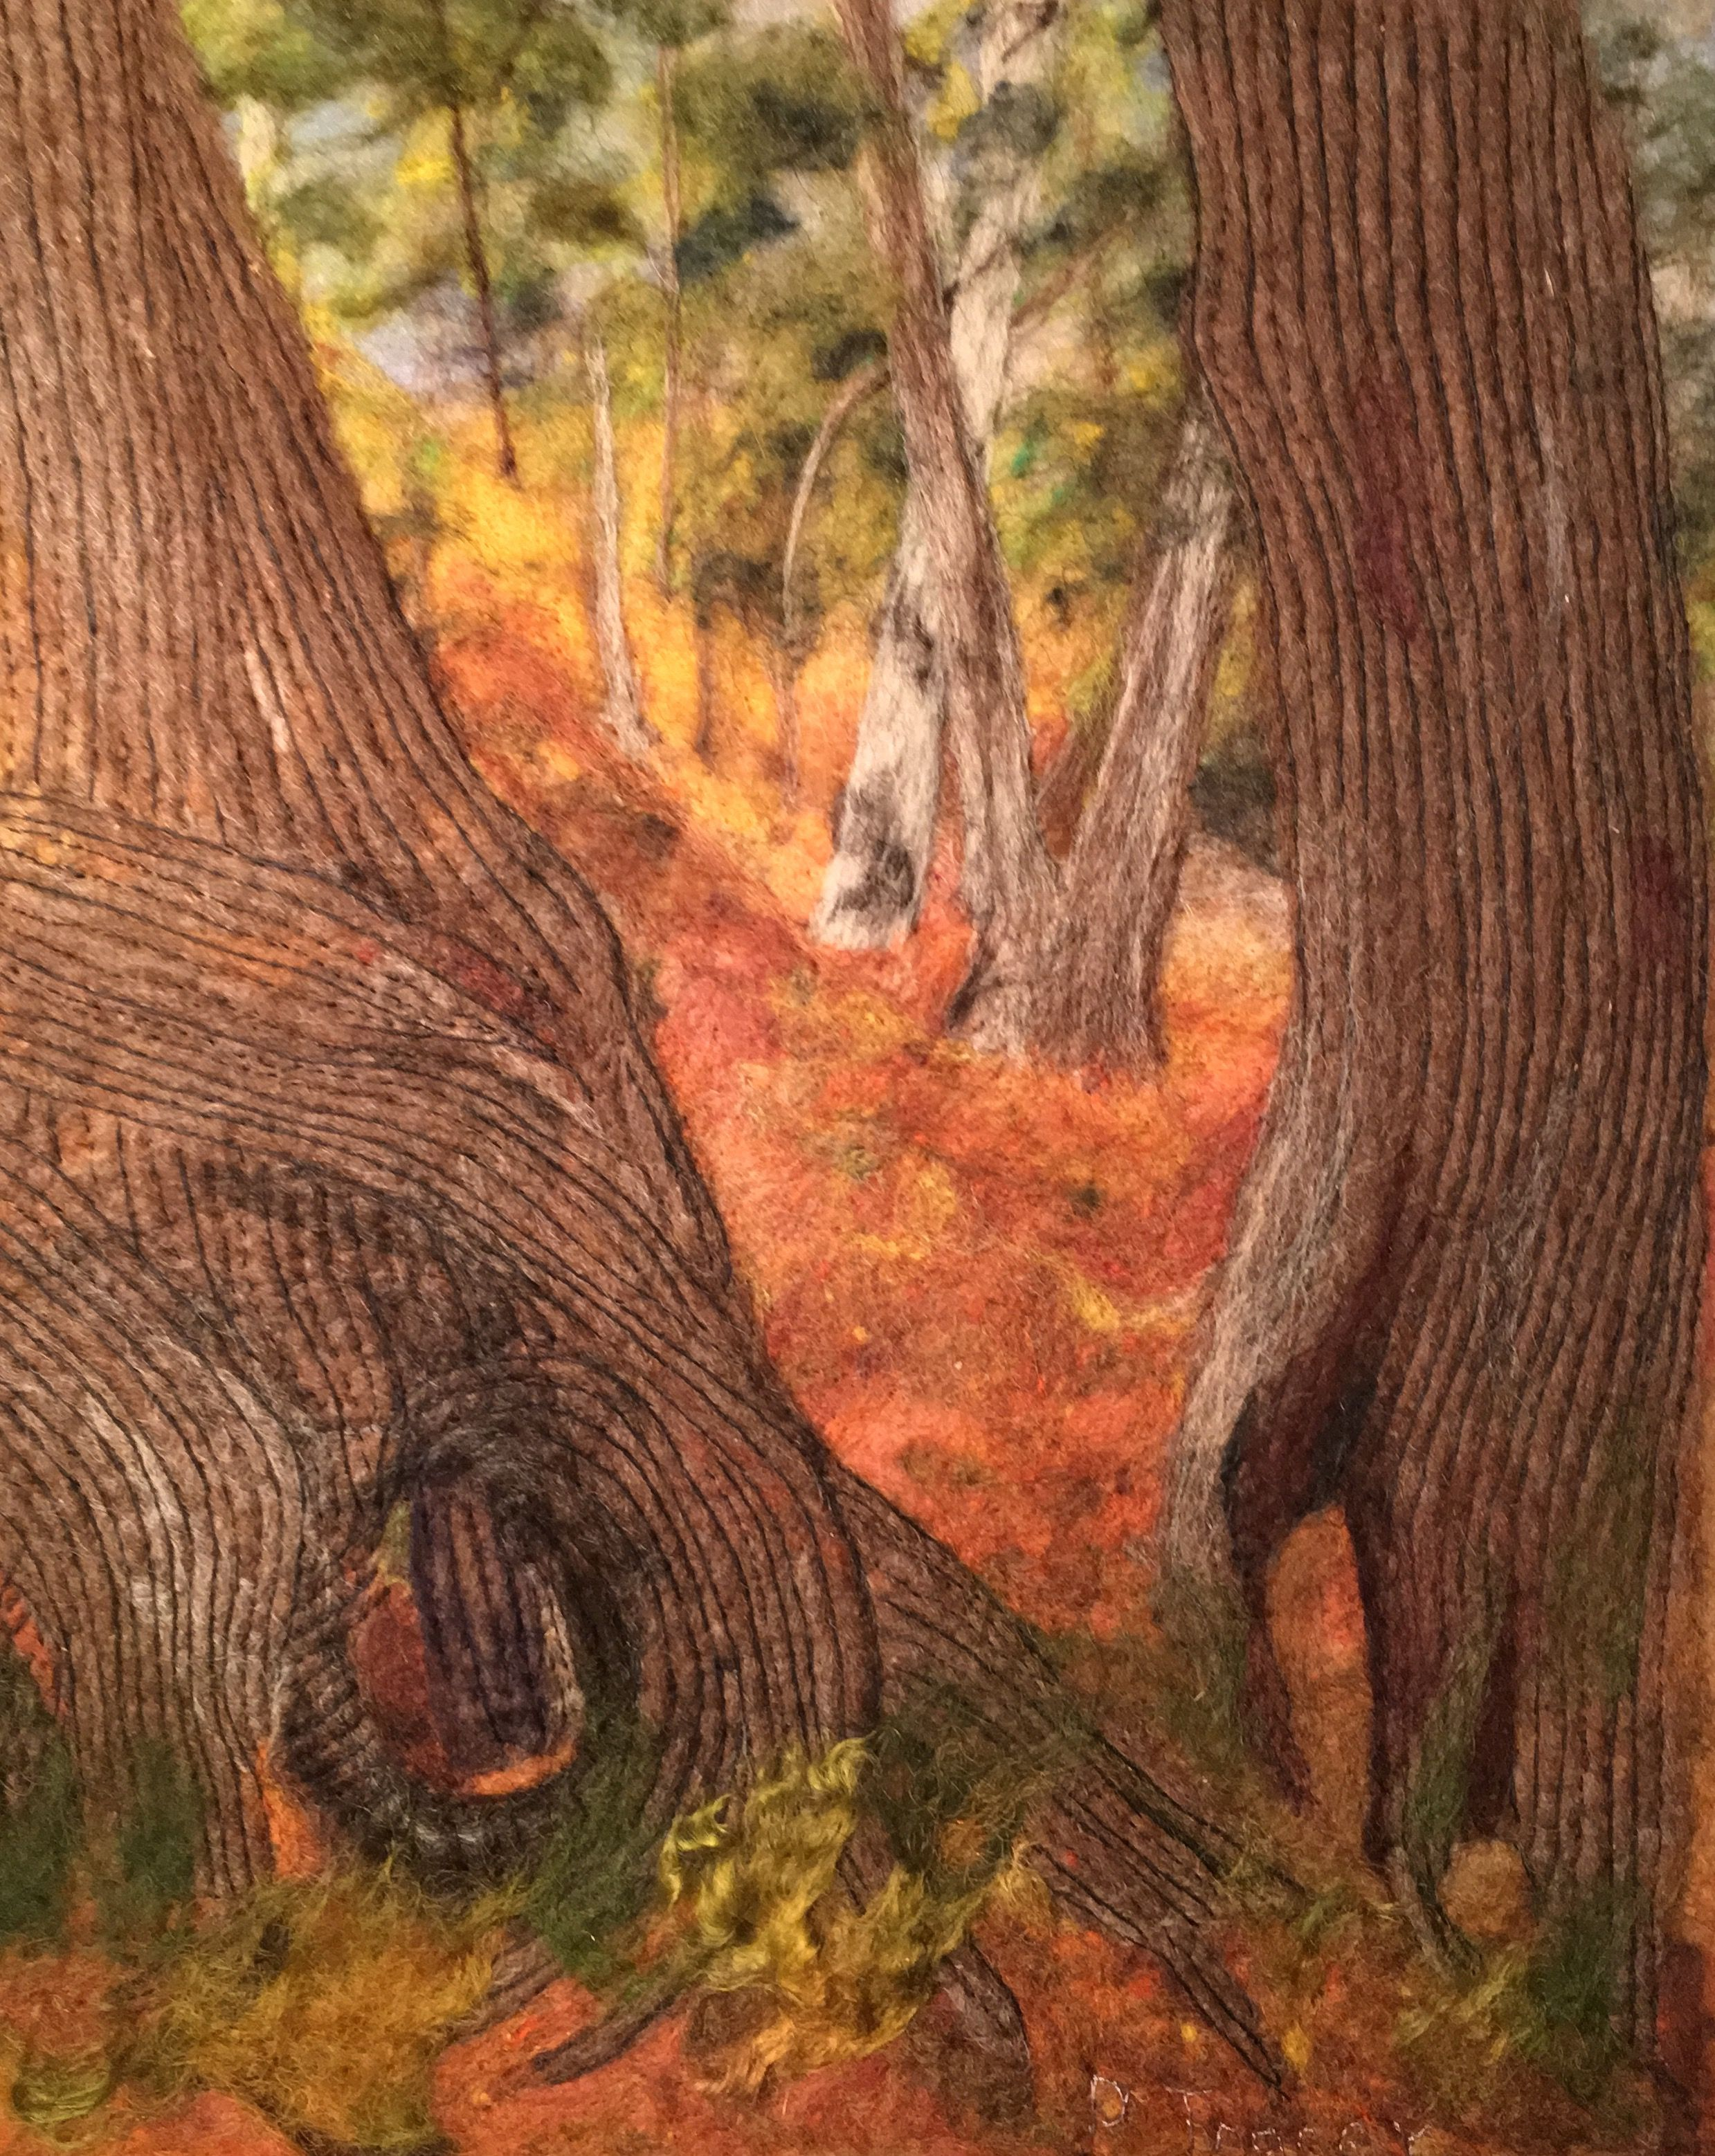 Needle felted landscape picture of Cedar trees in Jay Cooke State Park in Minnesota